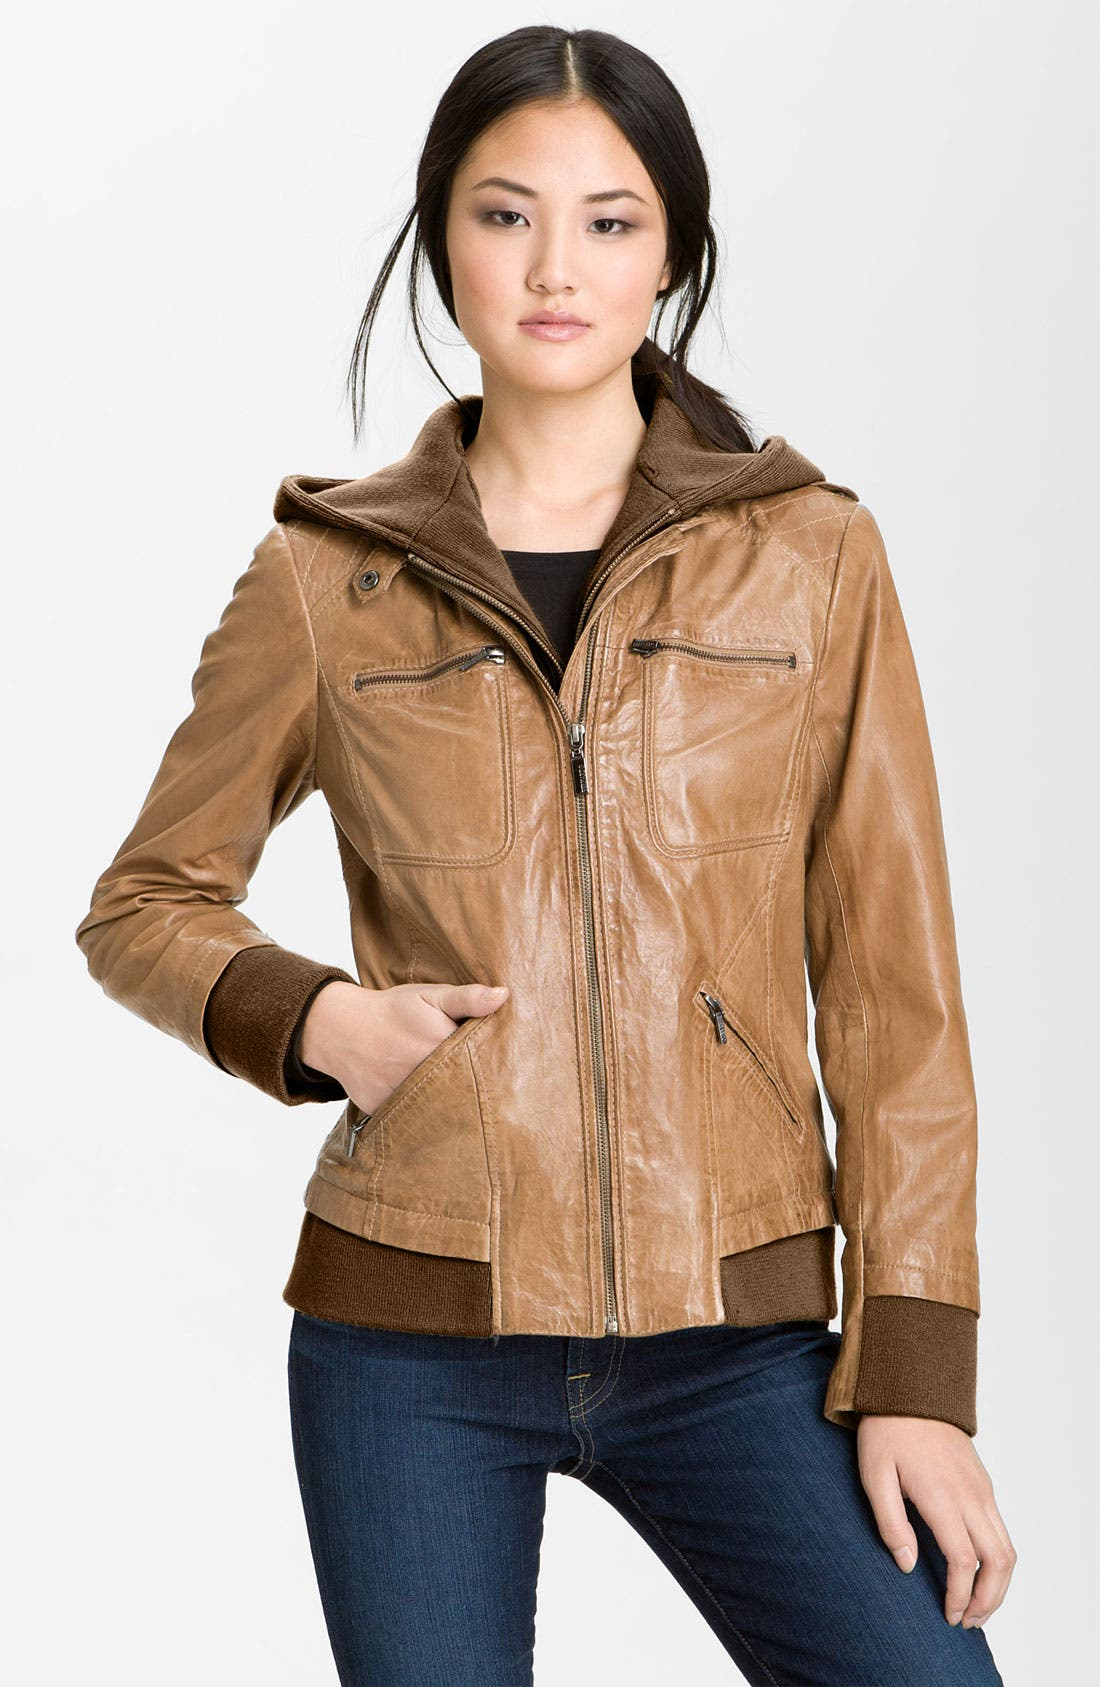 Main Image - Bernardo Leather Bomber Jacket with Detachable Hoodie Liner